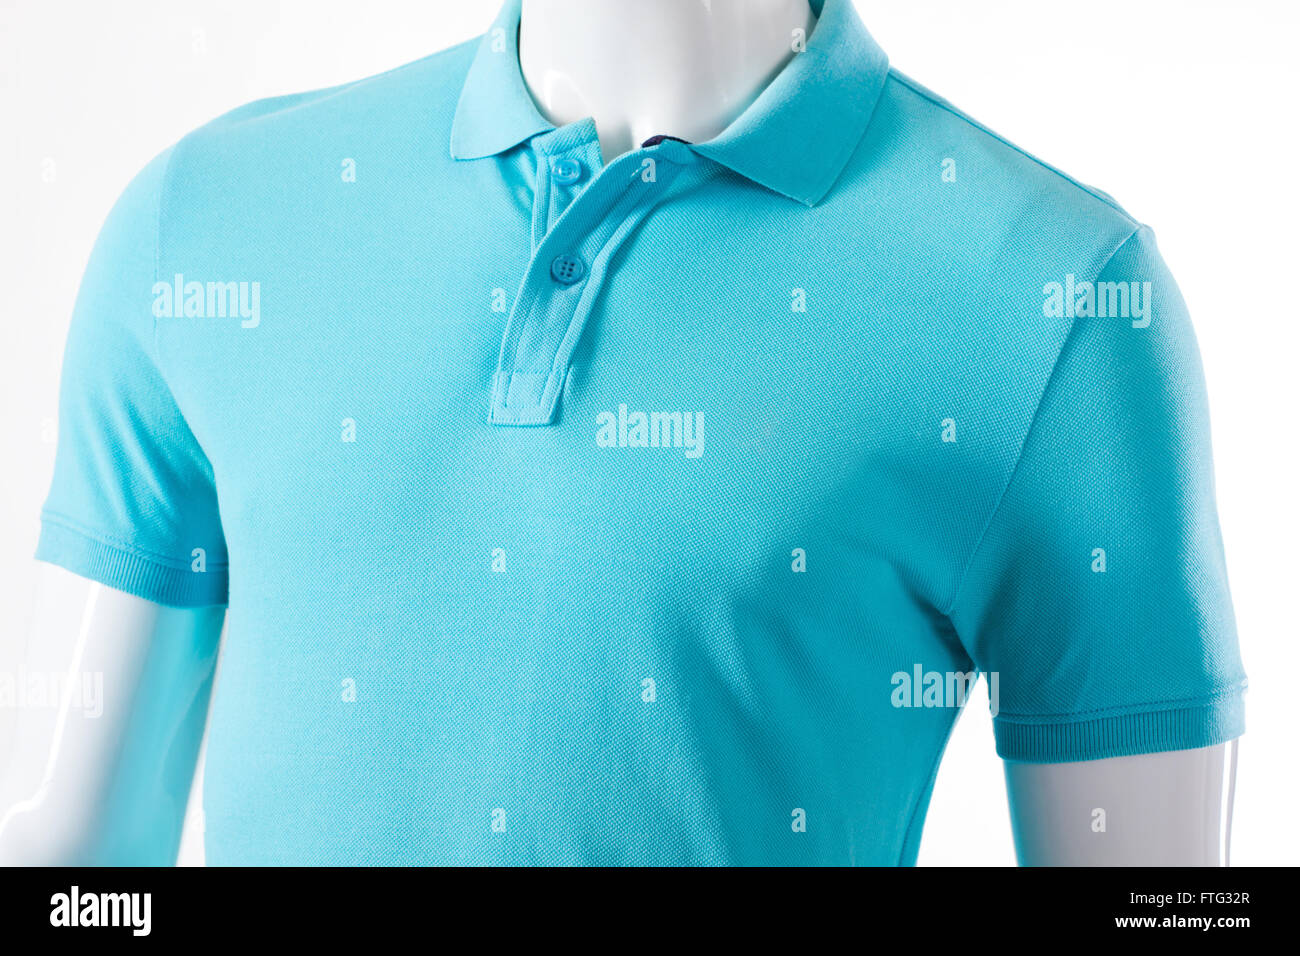 20467ab17bd2 Light blue t-shirt on mannequin. Male mannequin in polo t-shirt. Casual  light garment for men. T-shirt sale at local store.